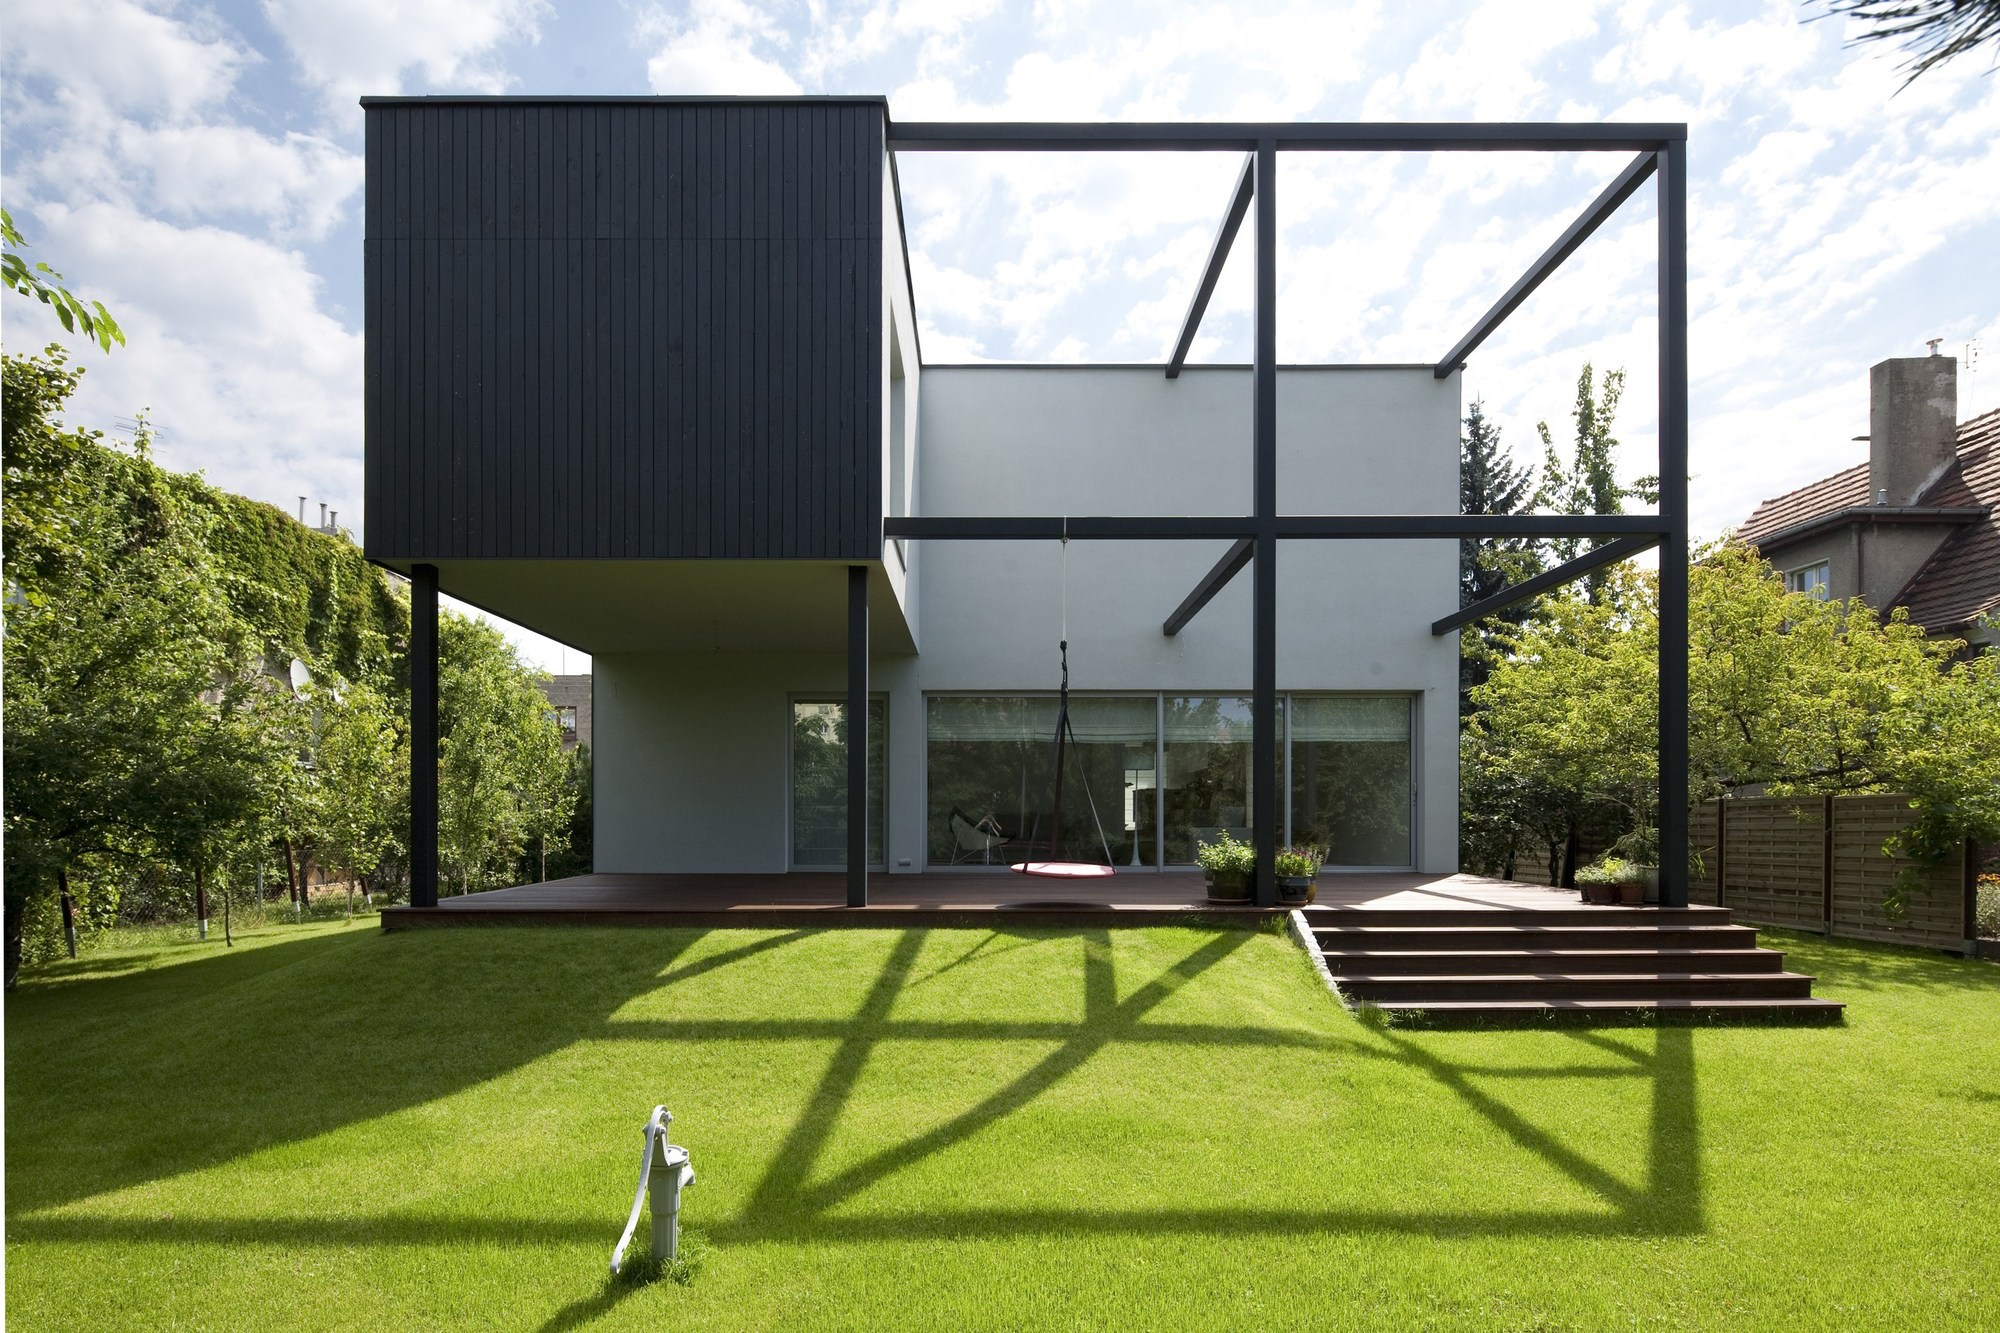 Container Haus Cube Black Cube House By Kameleonlab Caandesign Architecture And Home